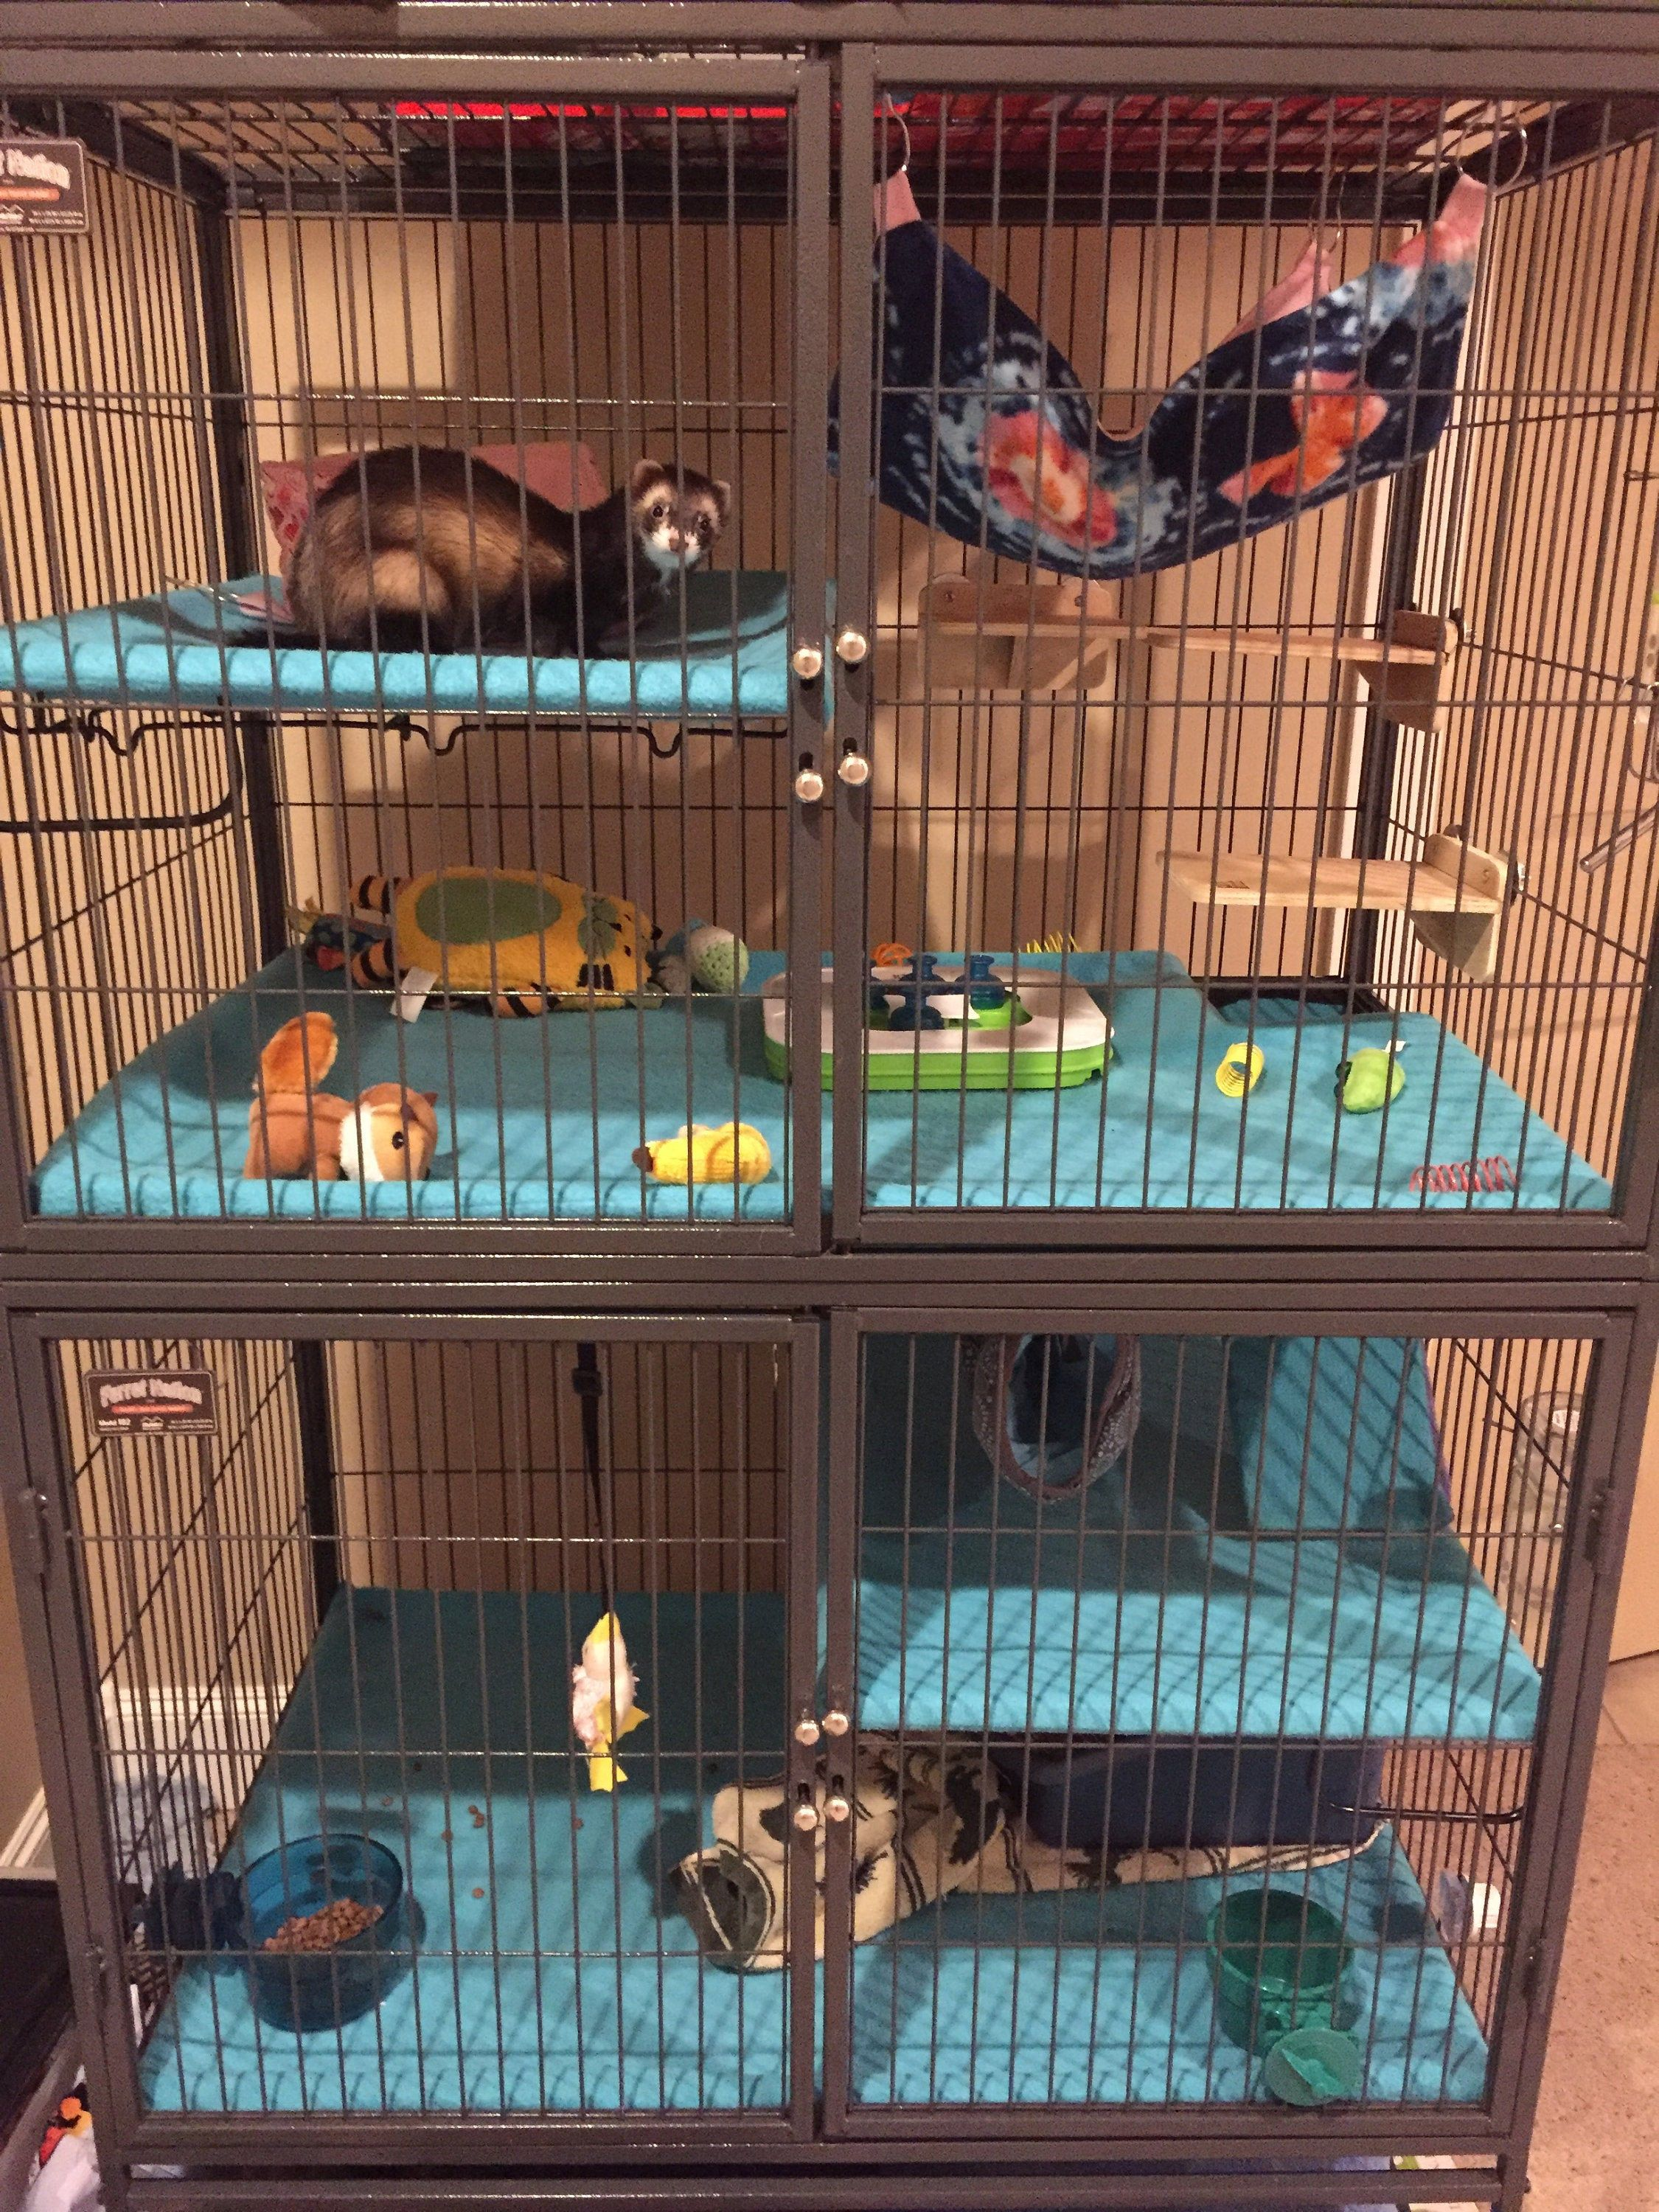 Custom Fleece Ferret Critter Nation Cage Liner For Ferrets Chinchillas Rats Etc In 2020 Critter Nation Cage Ferret Cage Ferret